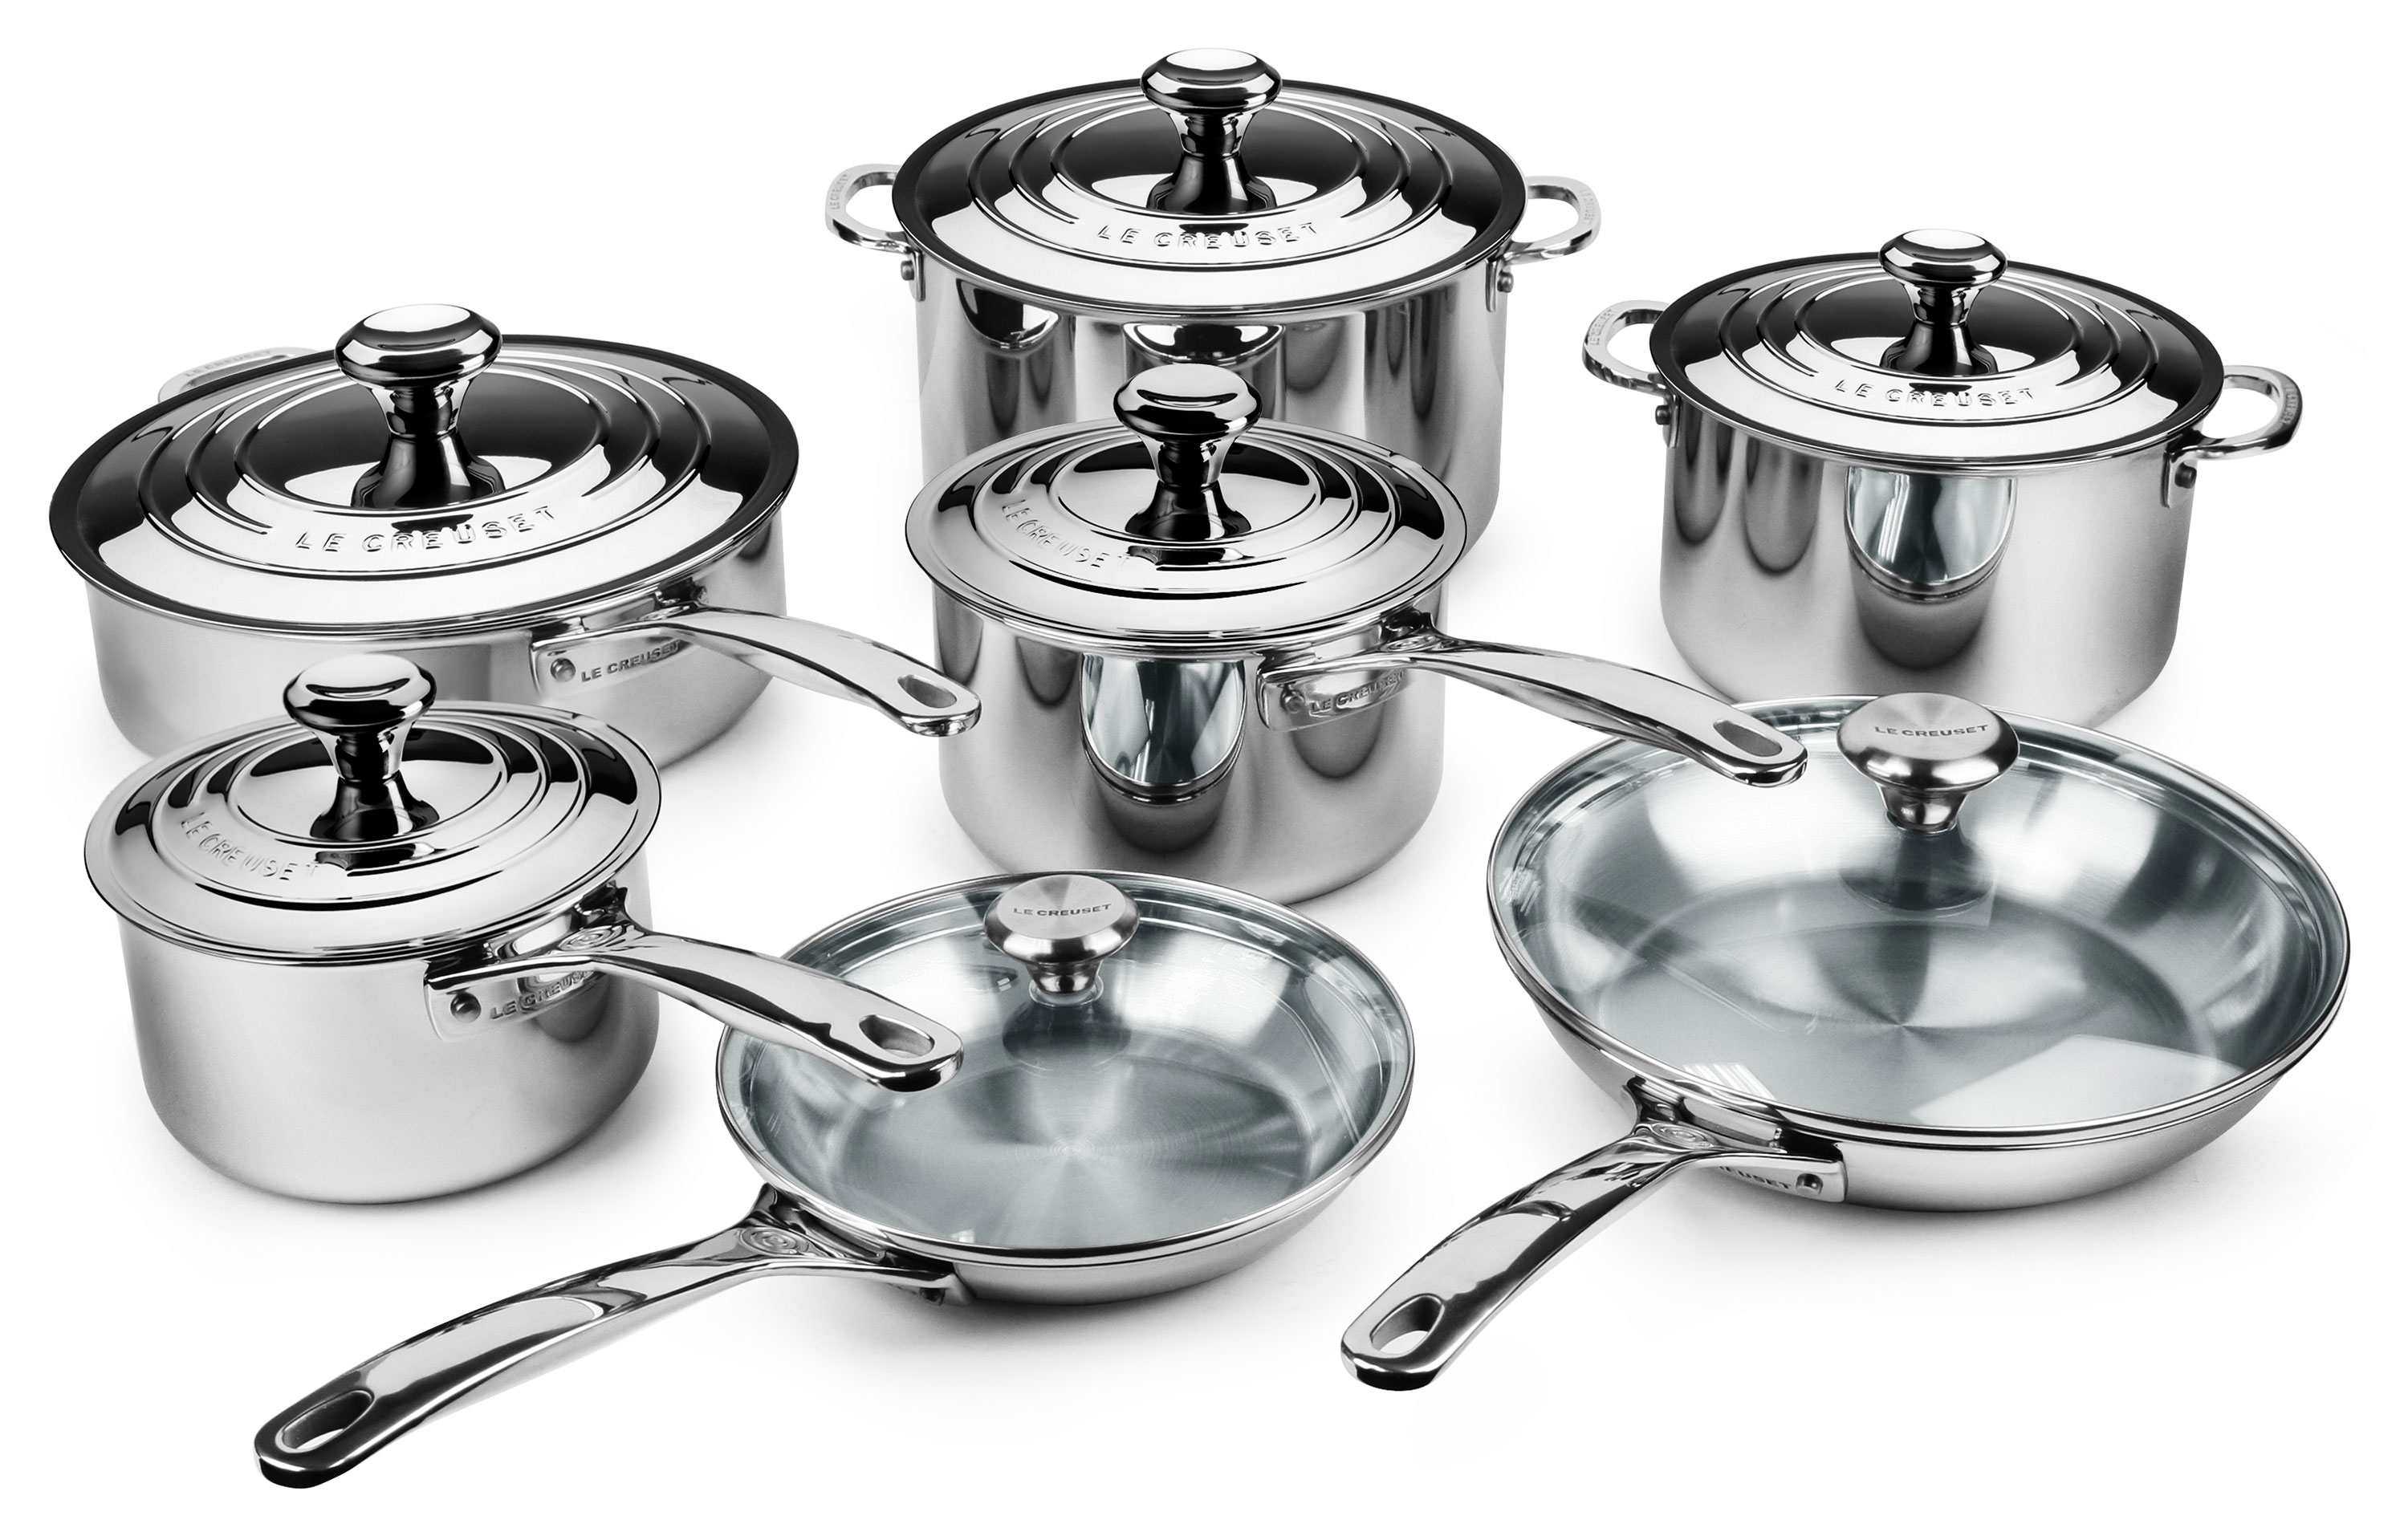 Le Creuset Stainless Steel Cookware Set 14 Piece Cutlery